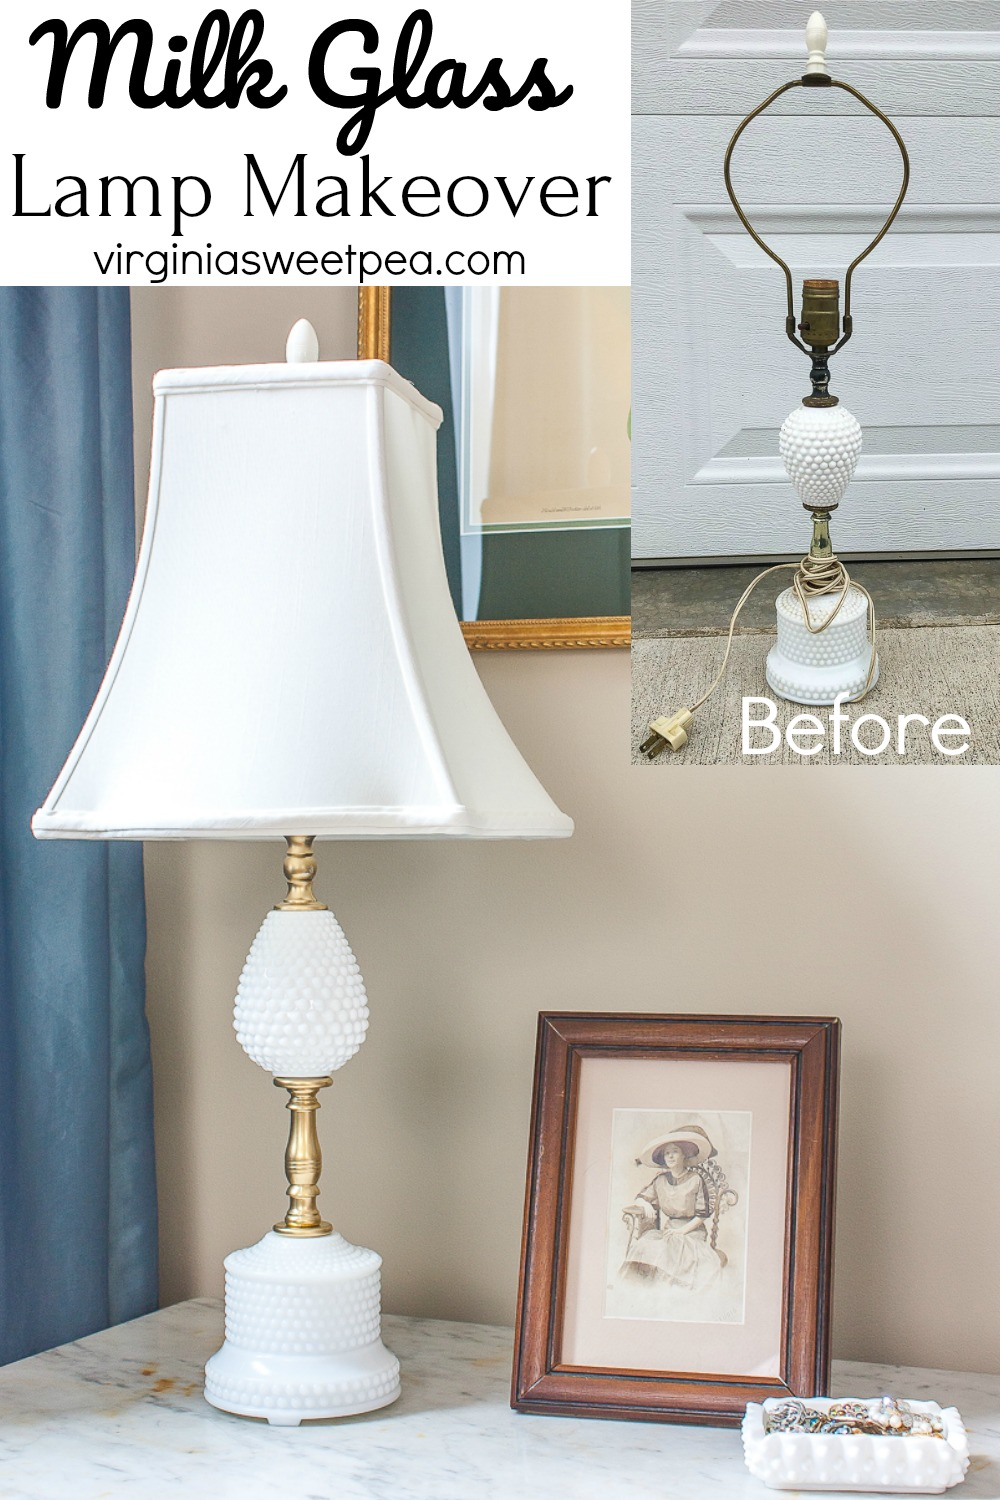 Milk Glass Lamp Makeover - A vintage Milk Glass lamp gets a new life with spray paint, rewiring, and a new shade. #milkglass #milkglasslamp #lampmakeover #thriftystyleteam #virginiasweetpea